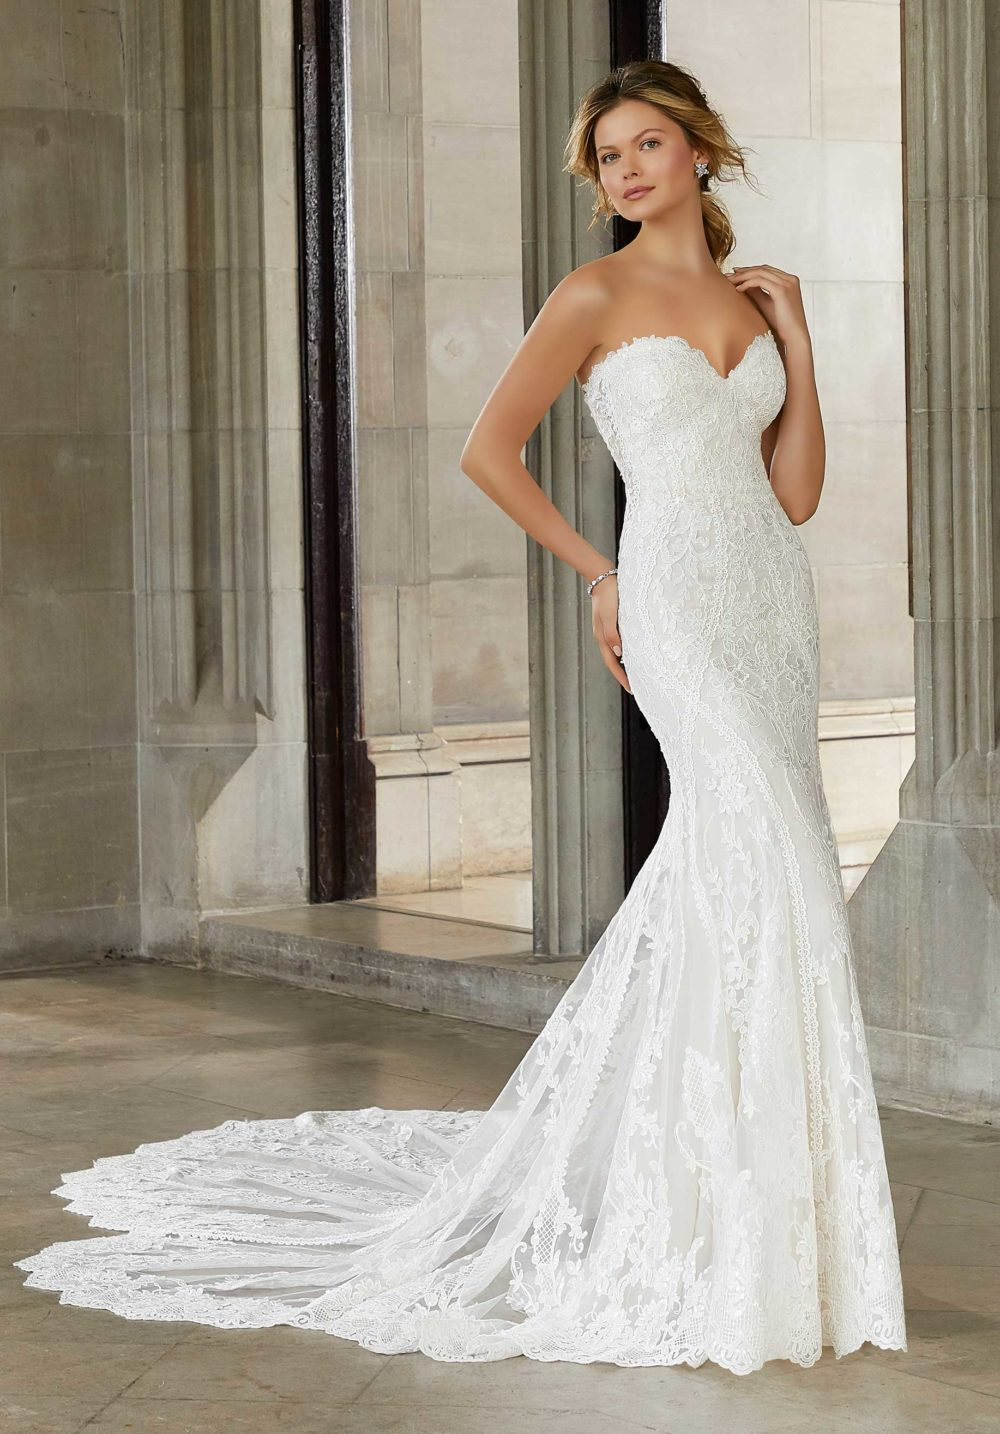 Morilee Wedding Gown Dress style 2143